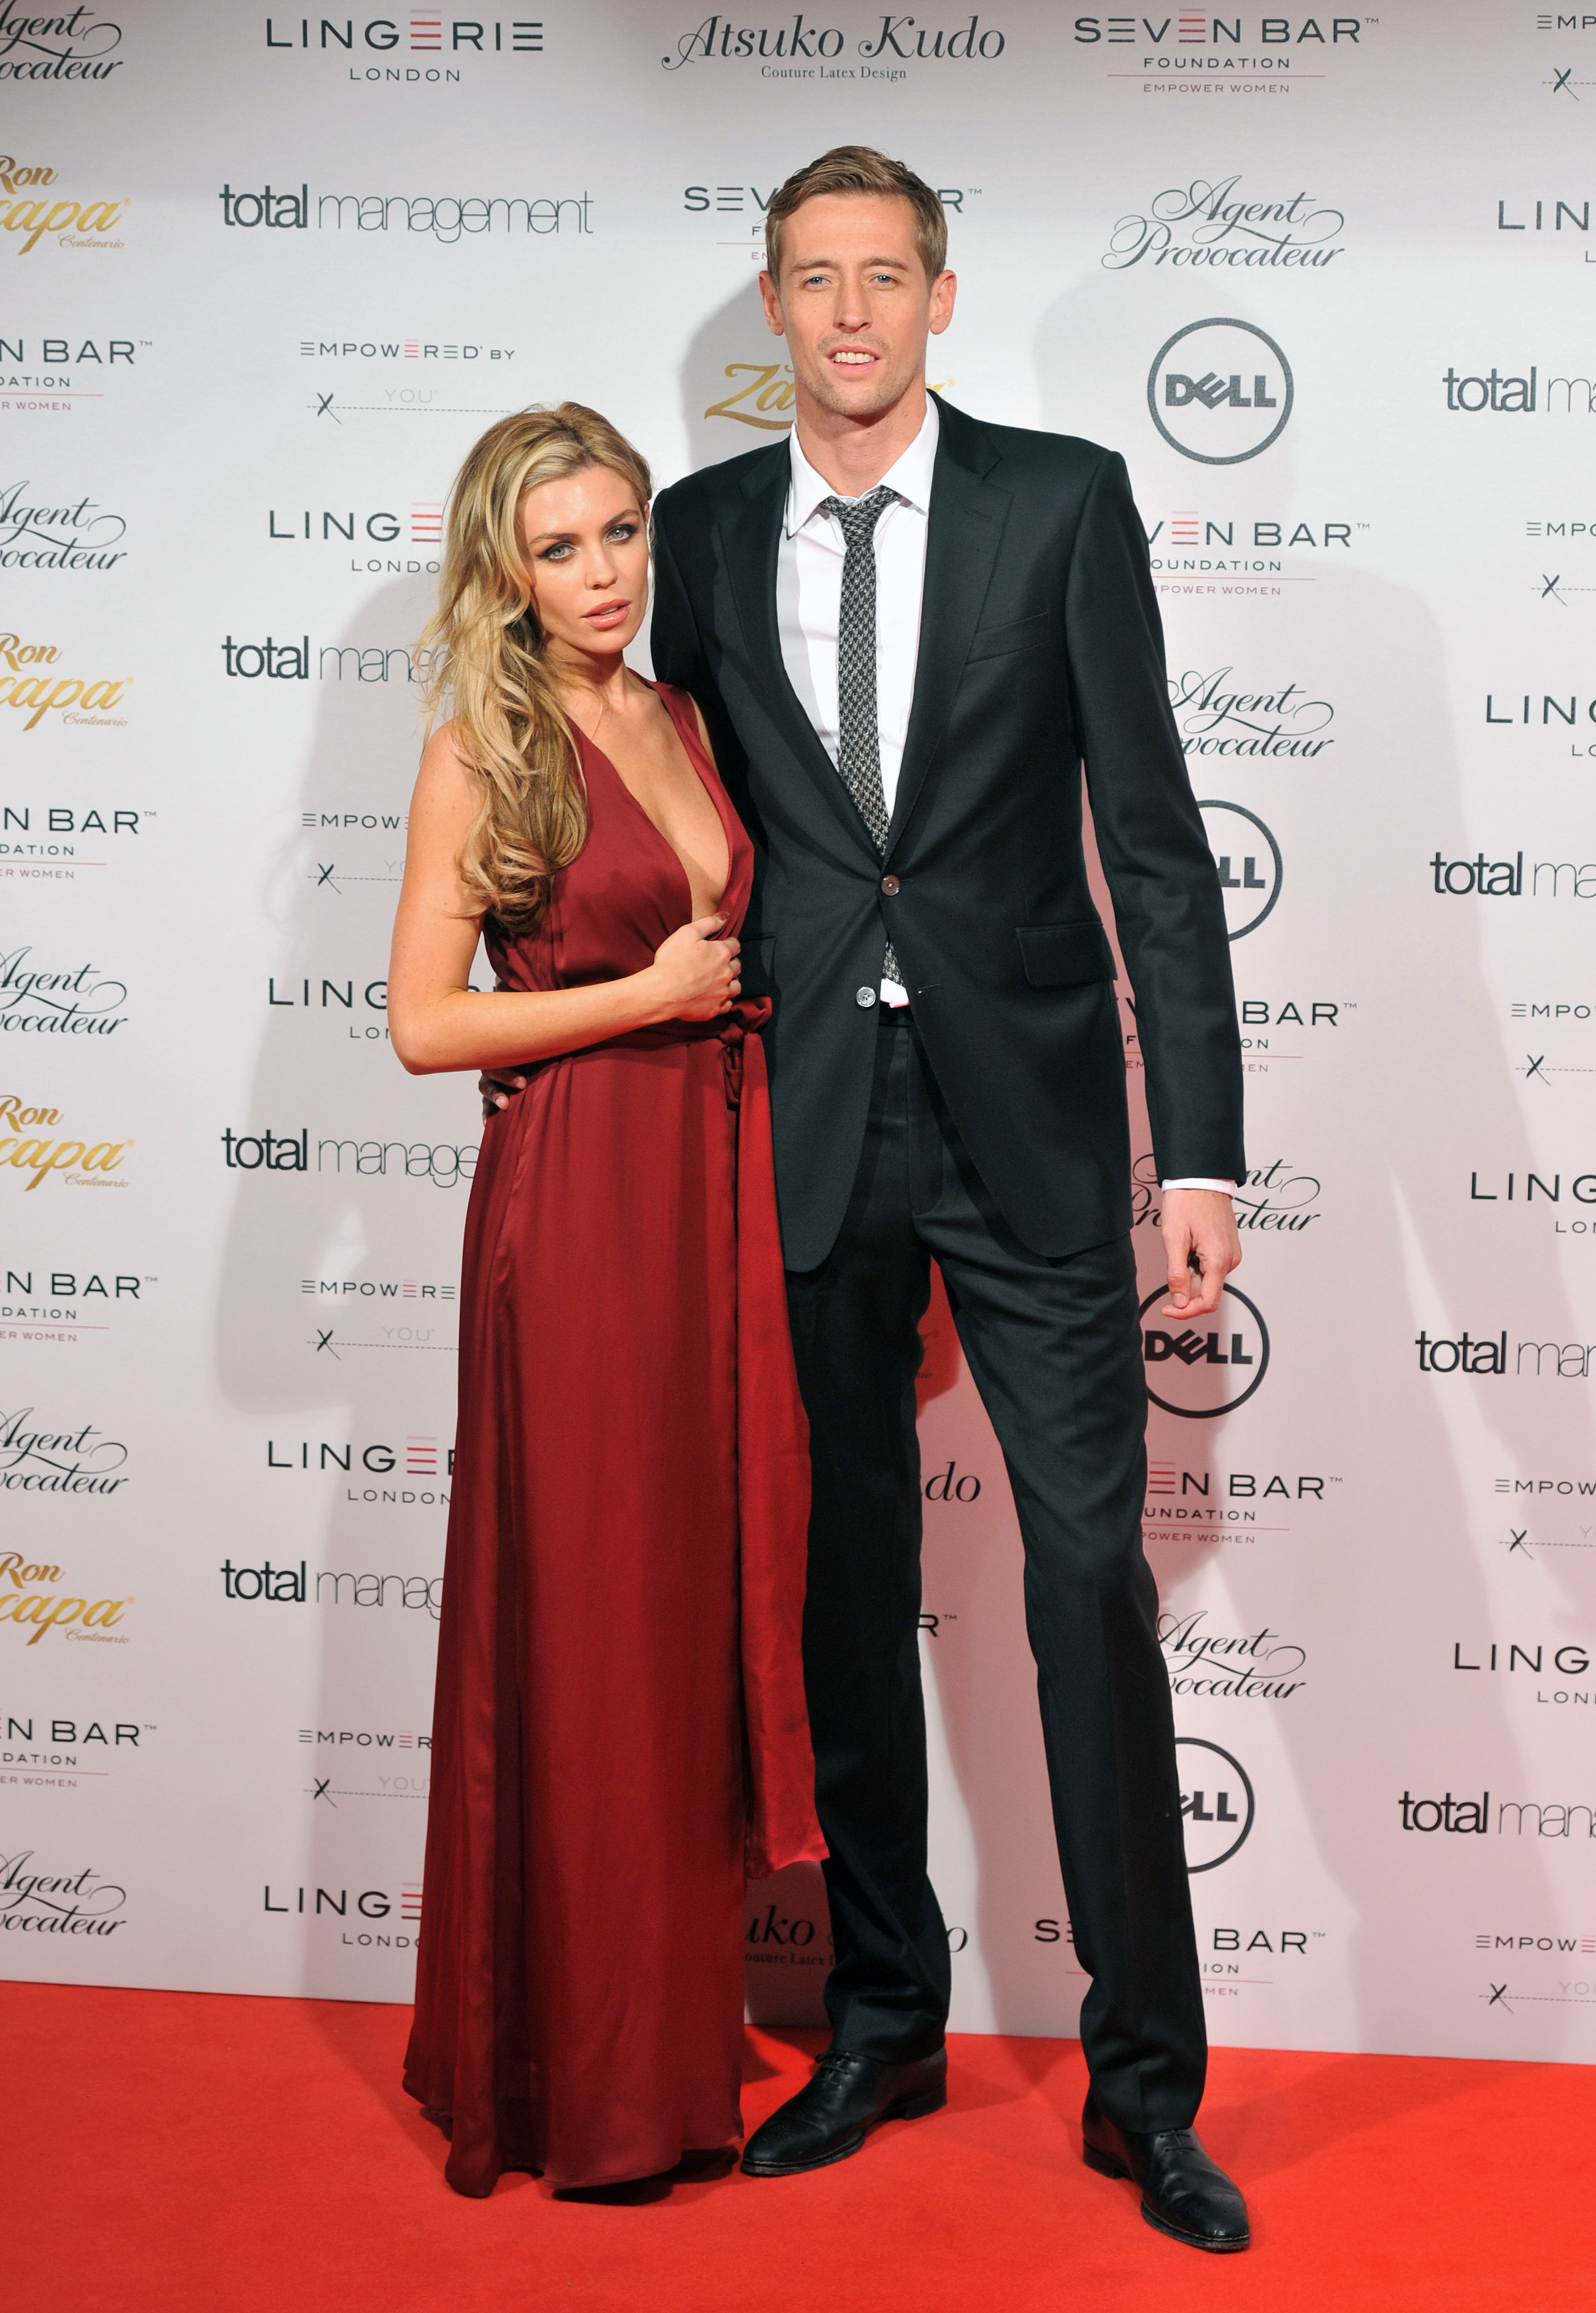 Stars and their height differences